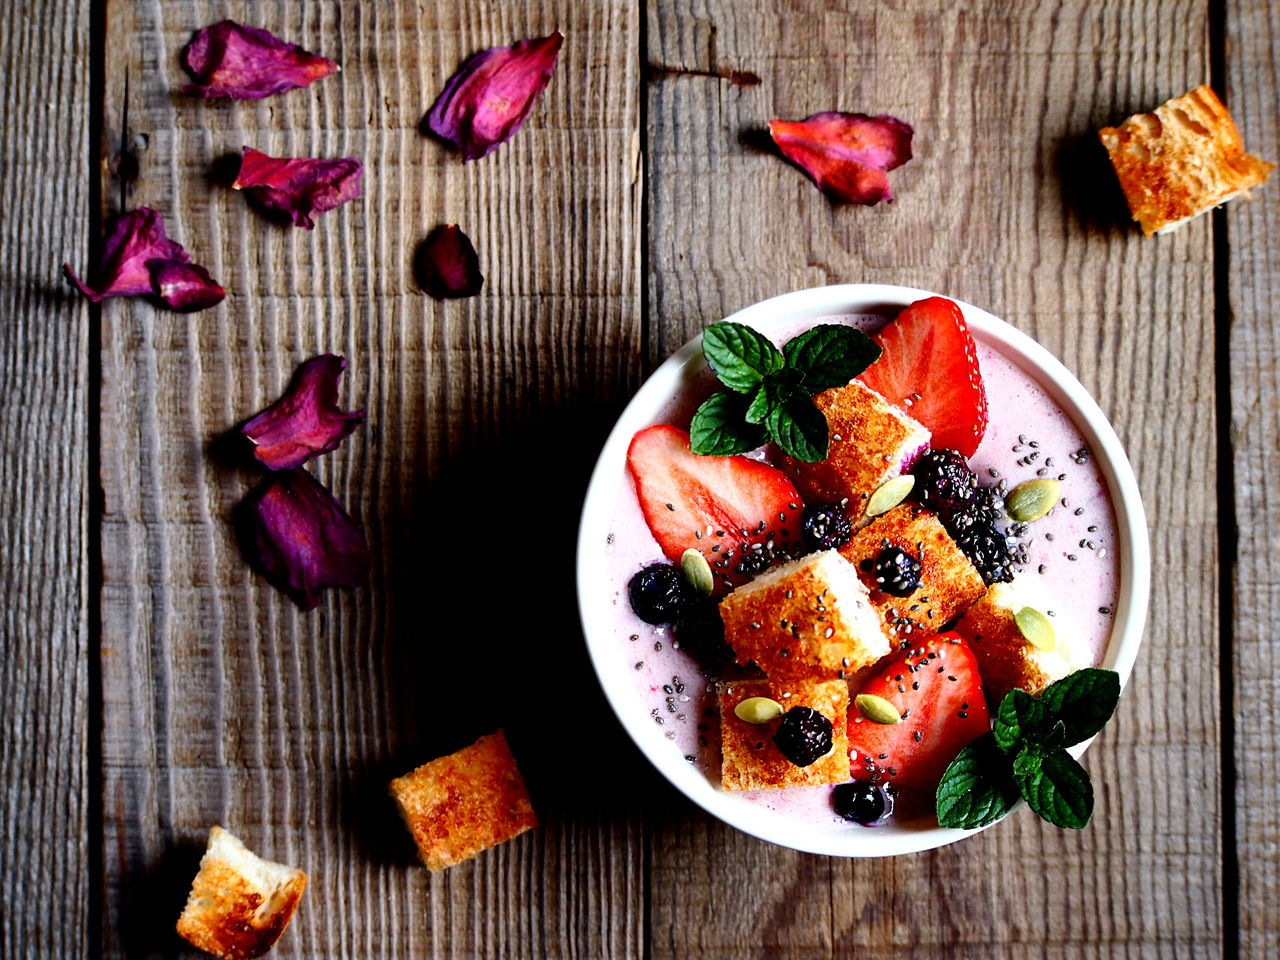 Strawberry Smoothie Bowl with Cinnamon Toast Breakfast Close-up Focus On Foreground Food Food And Drink Food Art Food Photography Food Styling Freshness Fruit Healthy Eating High Angle View My Point Of View Pink Color Sweet Food Table Temptation Wood - Material Art Is Everywhere Visual Feast